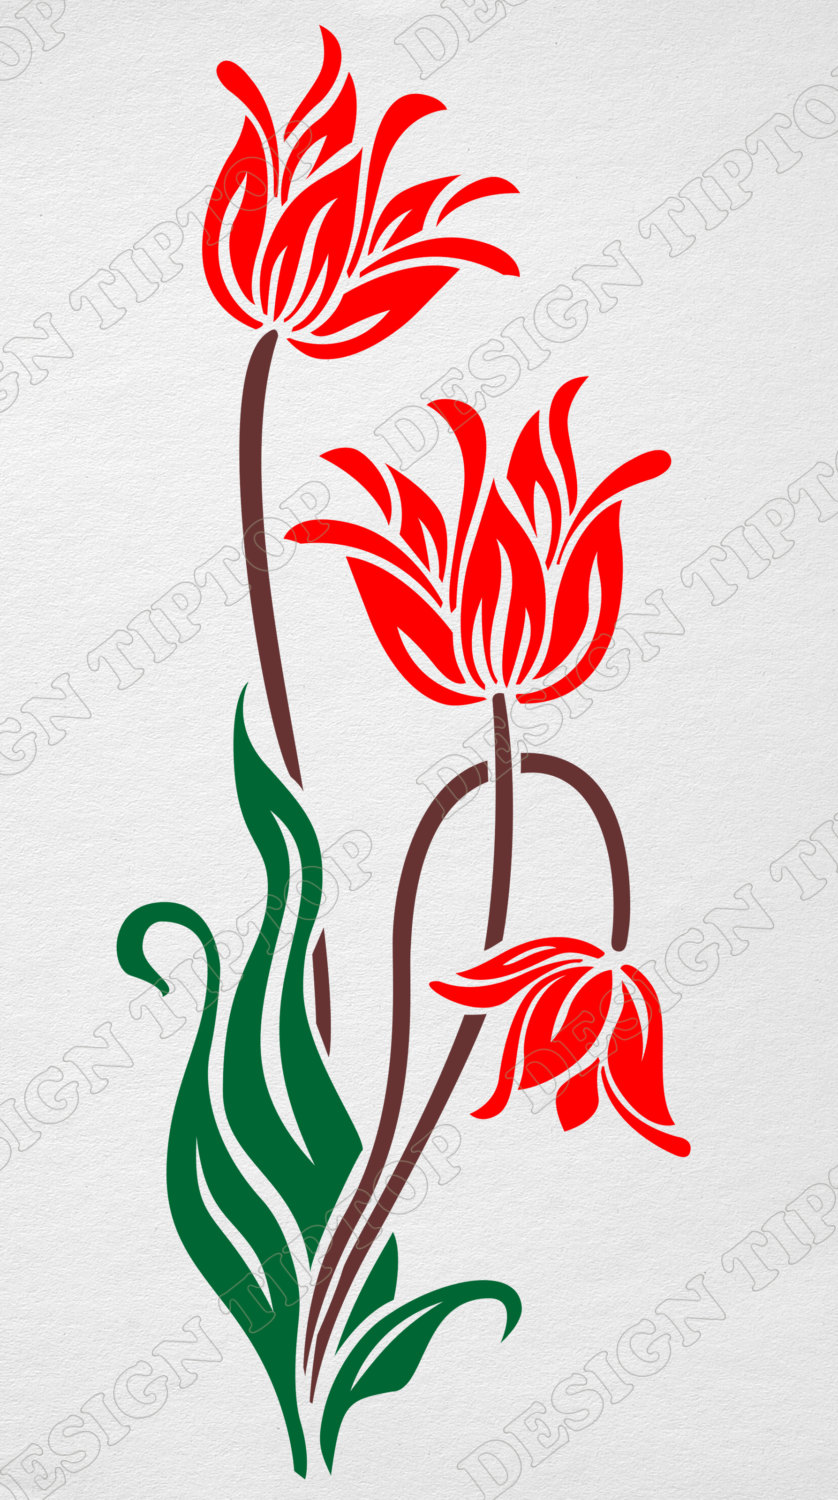 838x1500 Tulip Svg, Print And Cut, Flower Svg, Dxf Files, Cricut Cutting